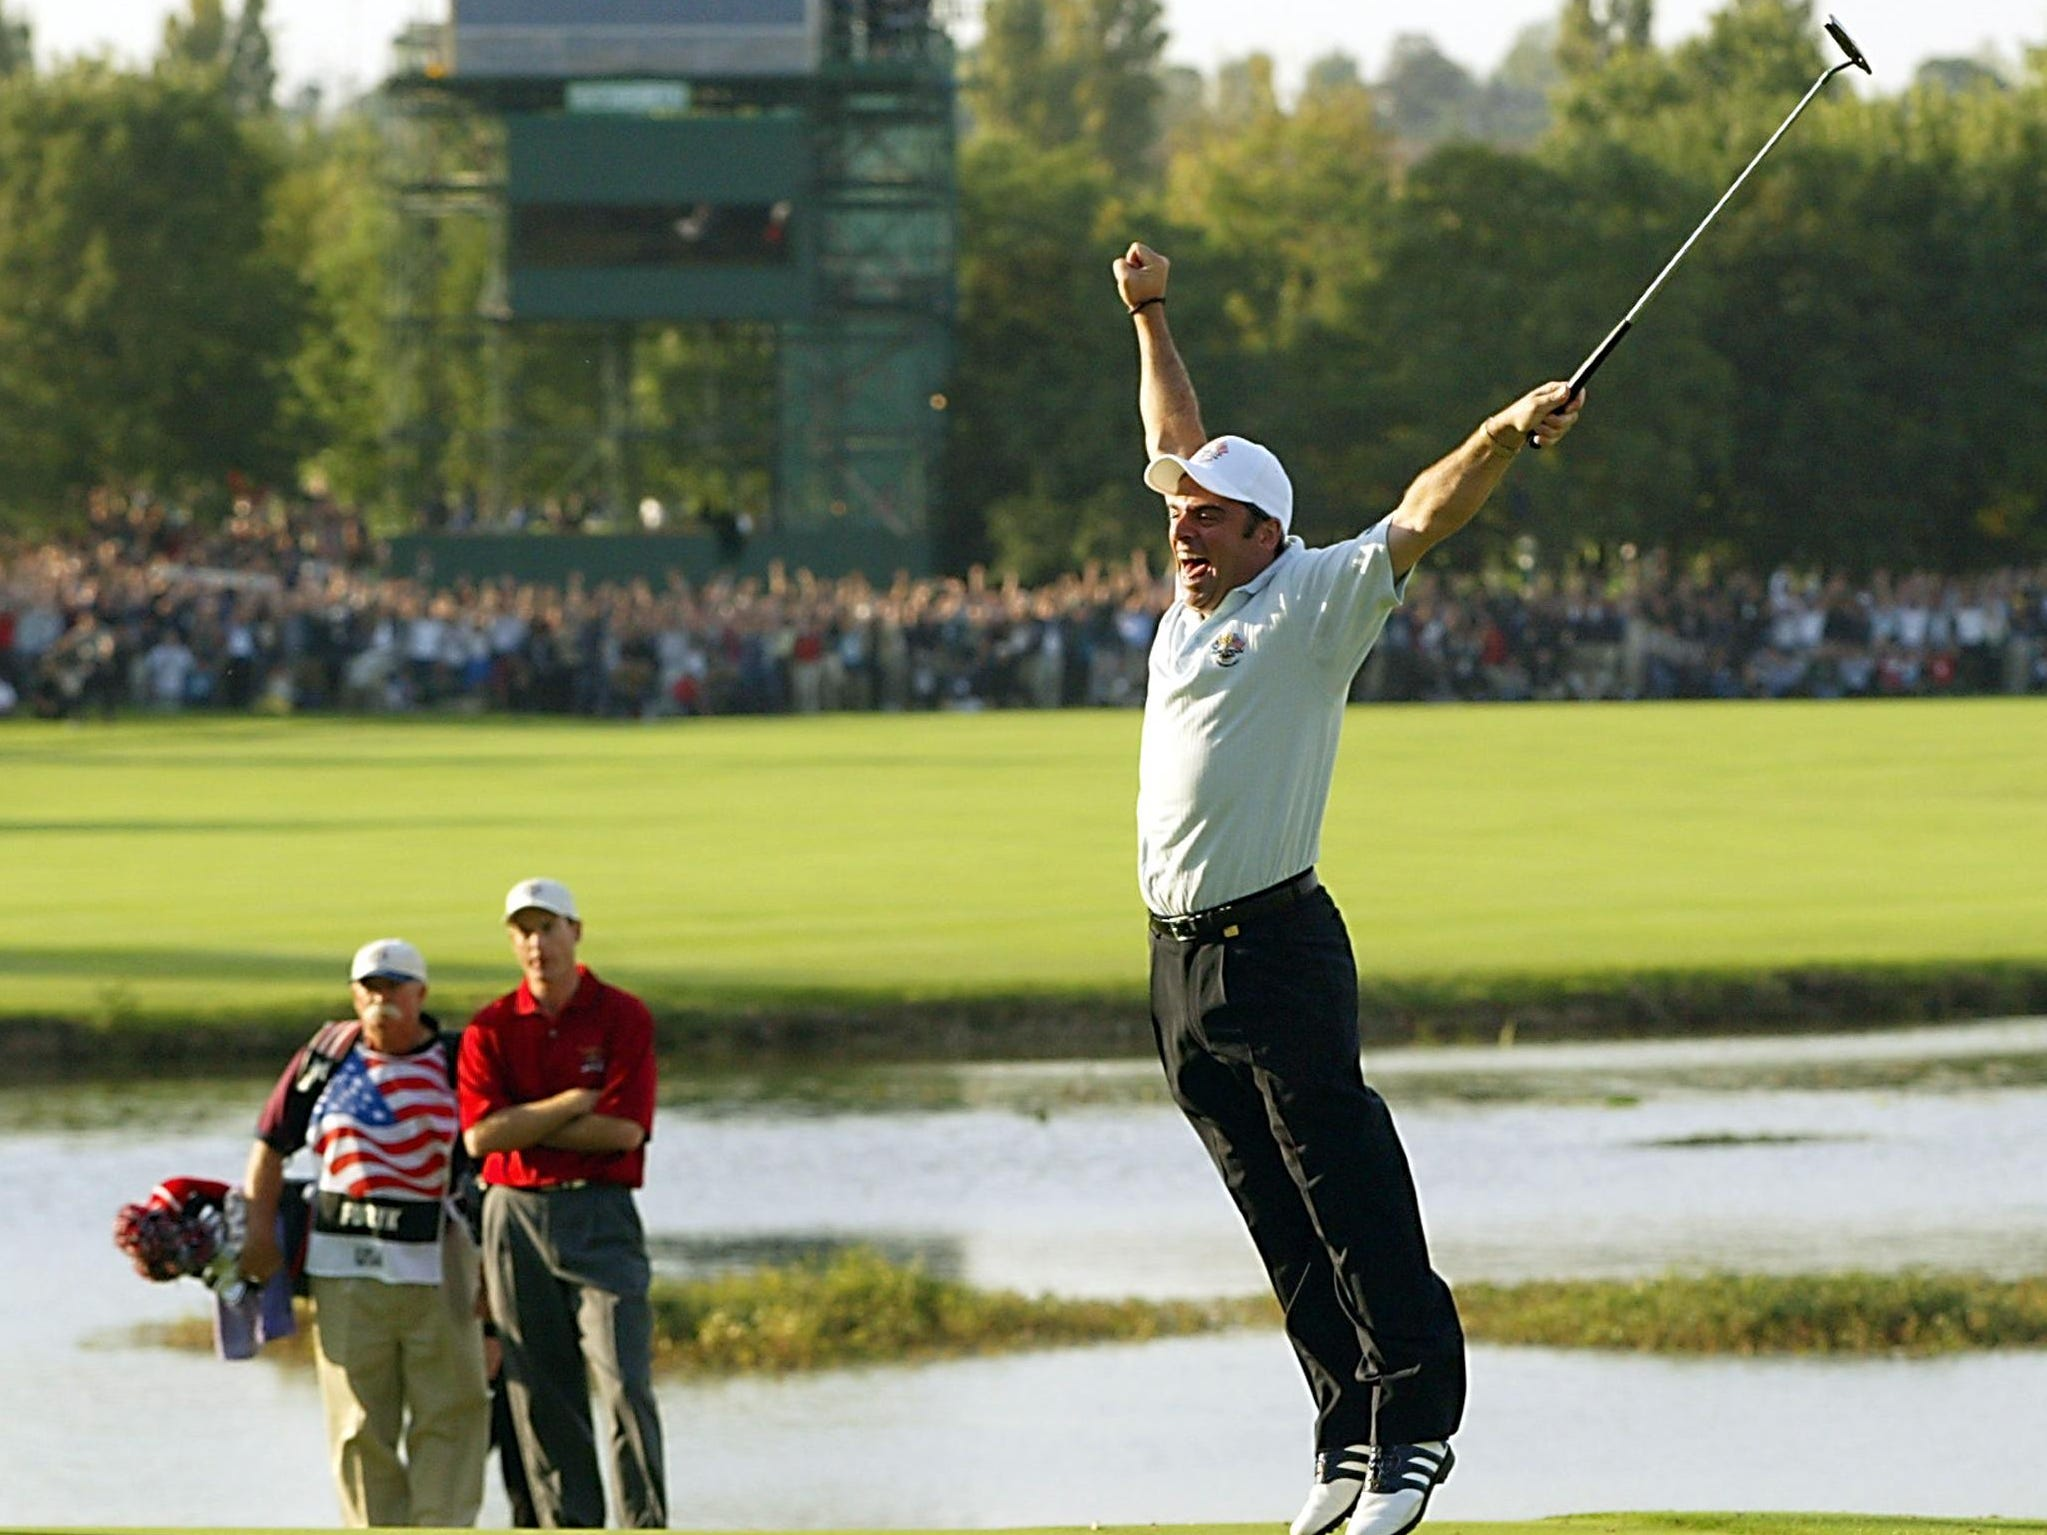 Team Europe, 2002: Paul McGinley leaps in the air after sinking the winning putt on the 18th green to win the Ryder Cup as Team USA's Jim Furyk and his caddie Mike Cowen look on. Europe won 15.5-12.5